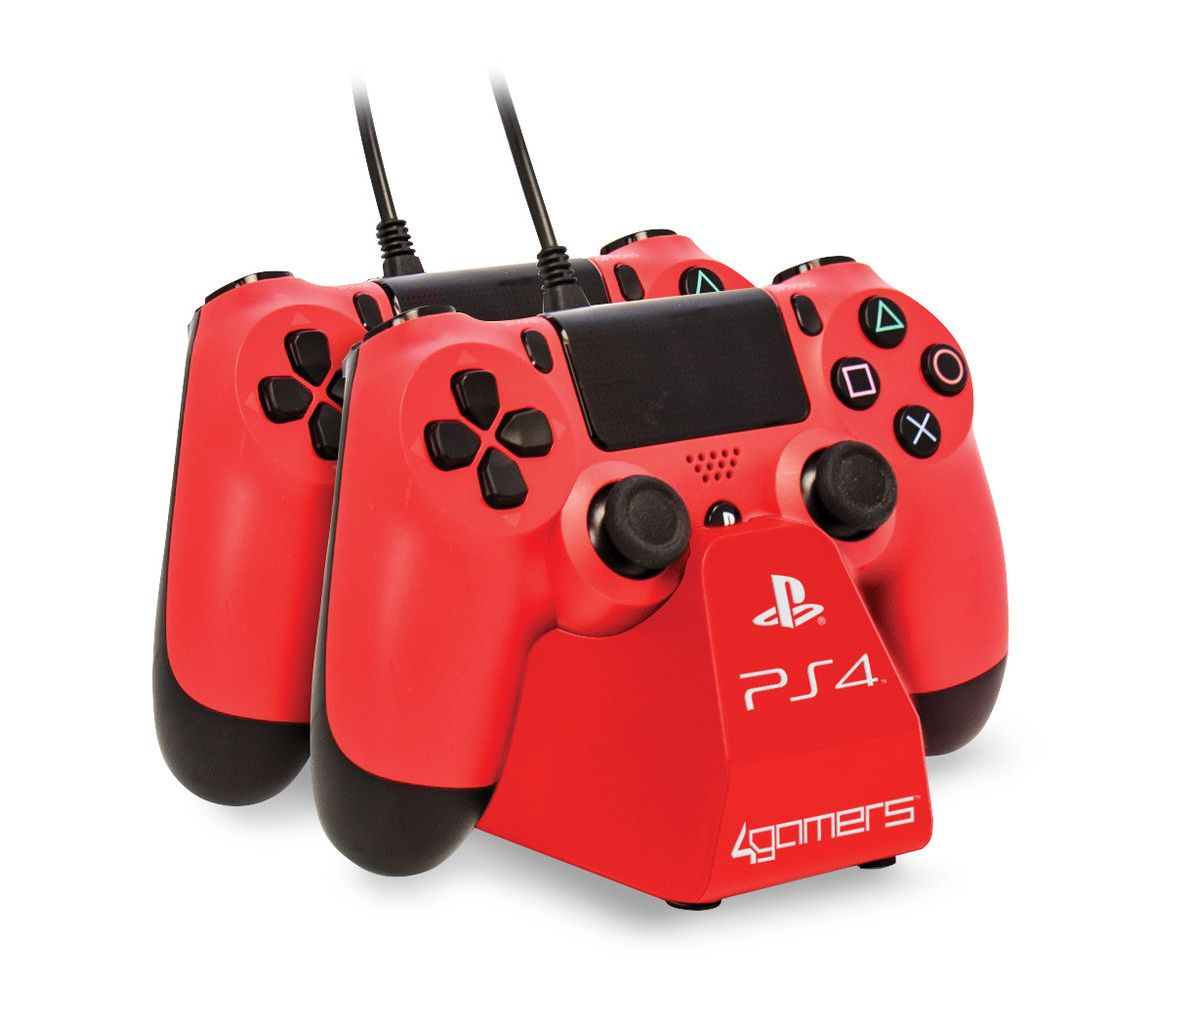 Aktuelle Angebote Kaufroboter Die Discounter Suchmaschine Ps 4 Slim New 500gb Fw 505 4gamers Playstation Zubehr Dual Charge N Stand Rot